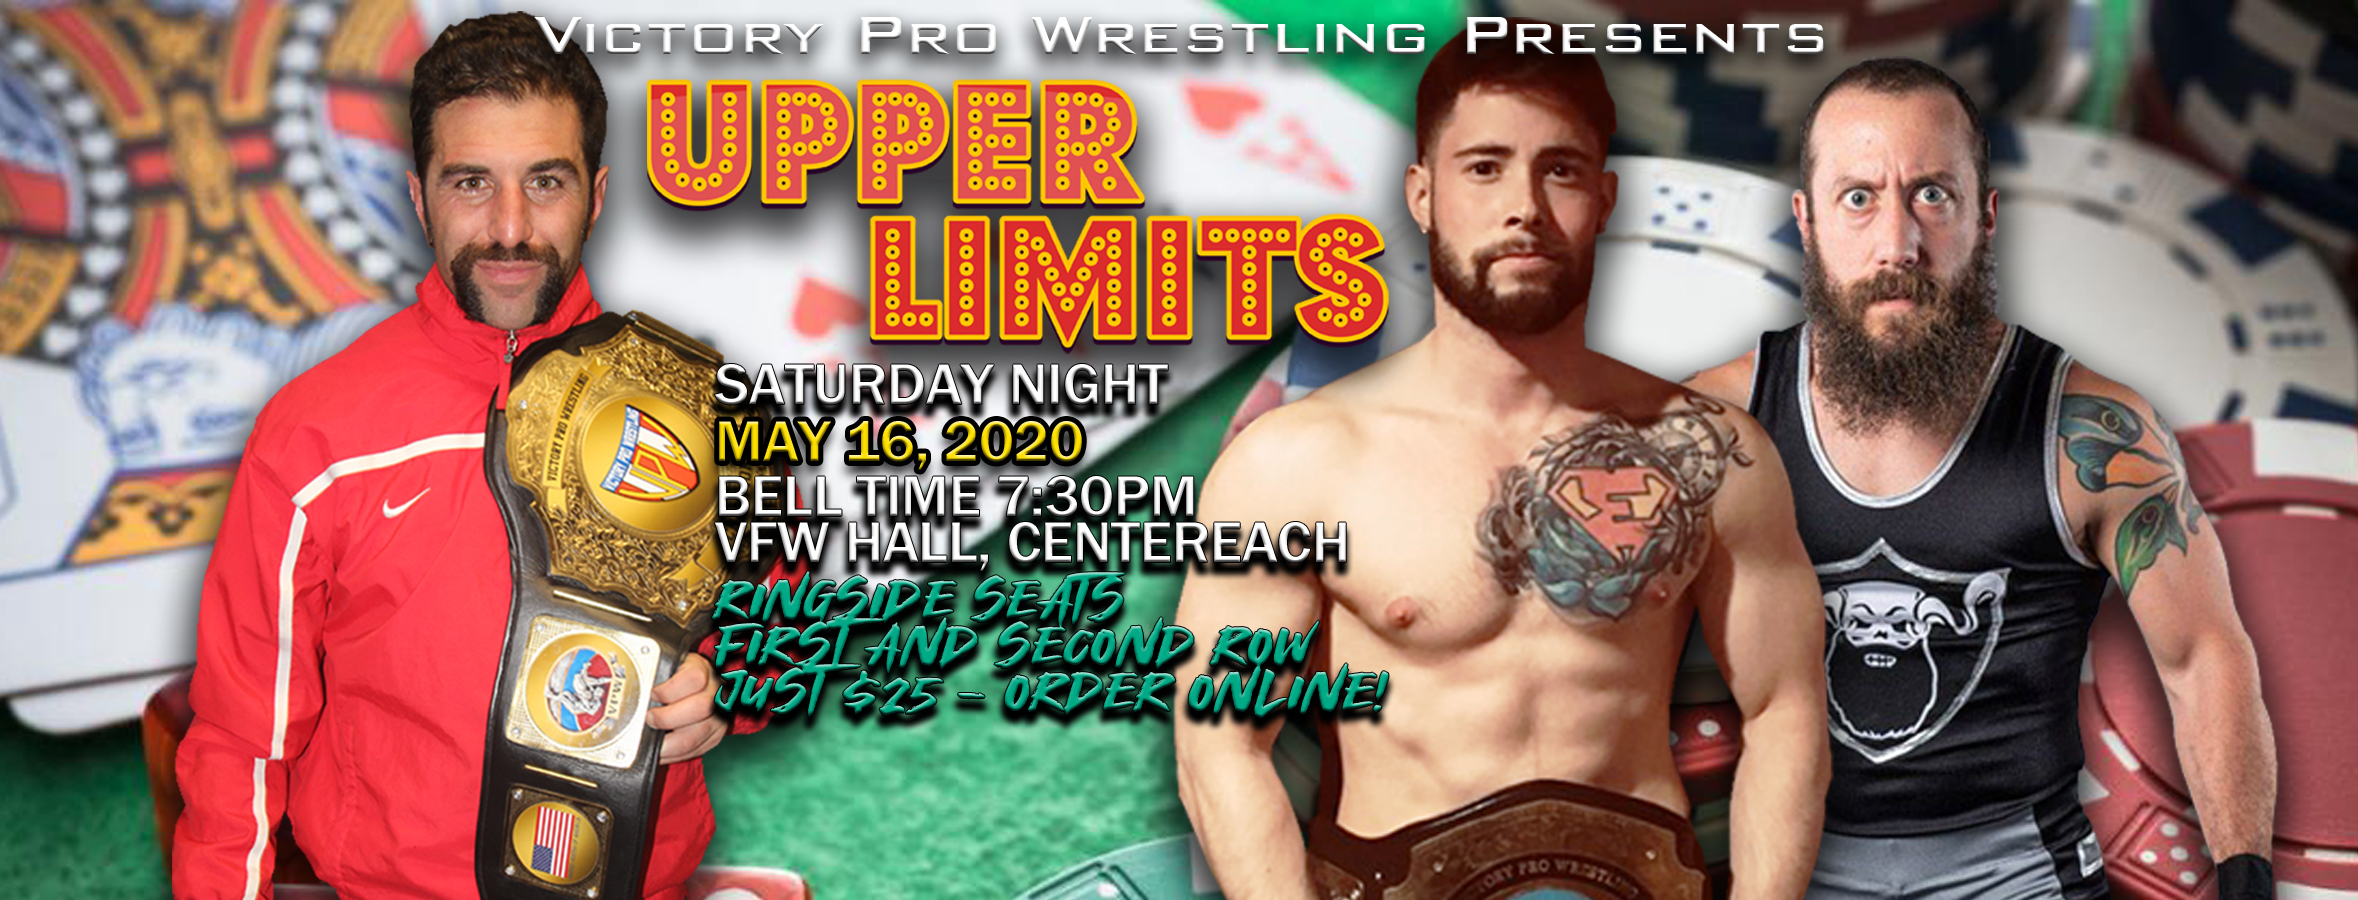 VPW presents Upper Limits May 16, 2020